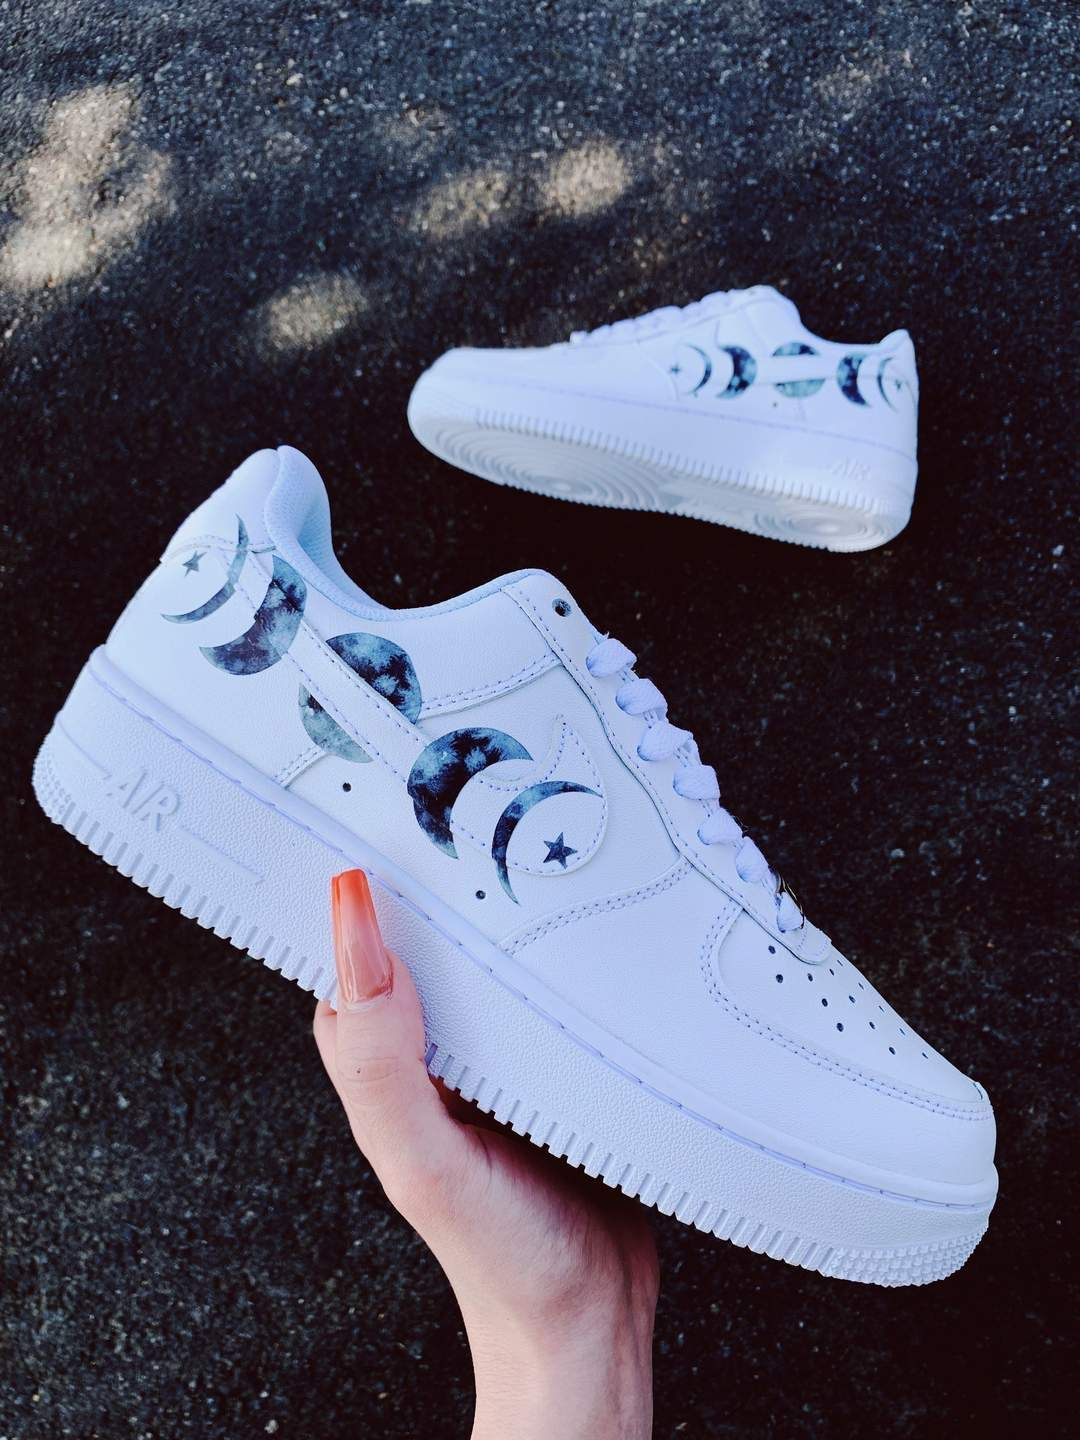 To The Moon Af1 White Nike Shoes Nike Air Shoes Sneakers Fashion